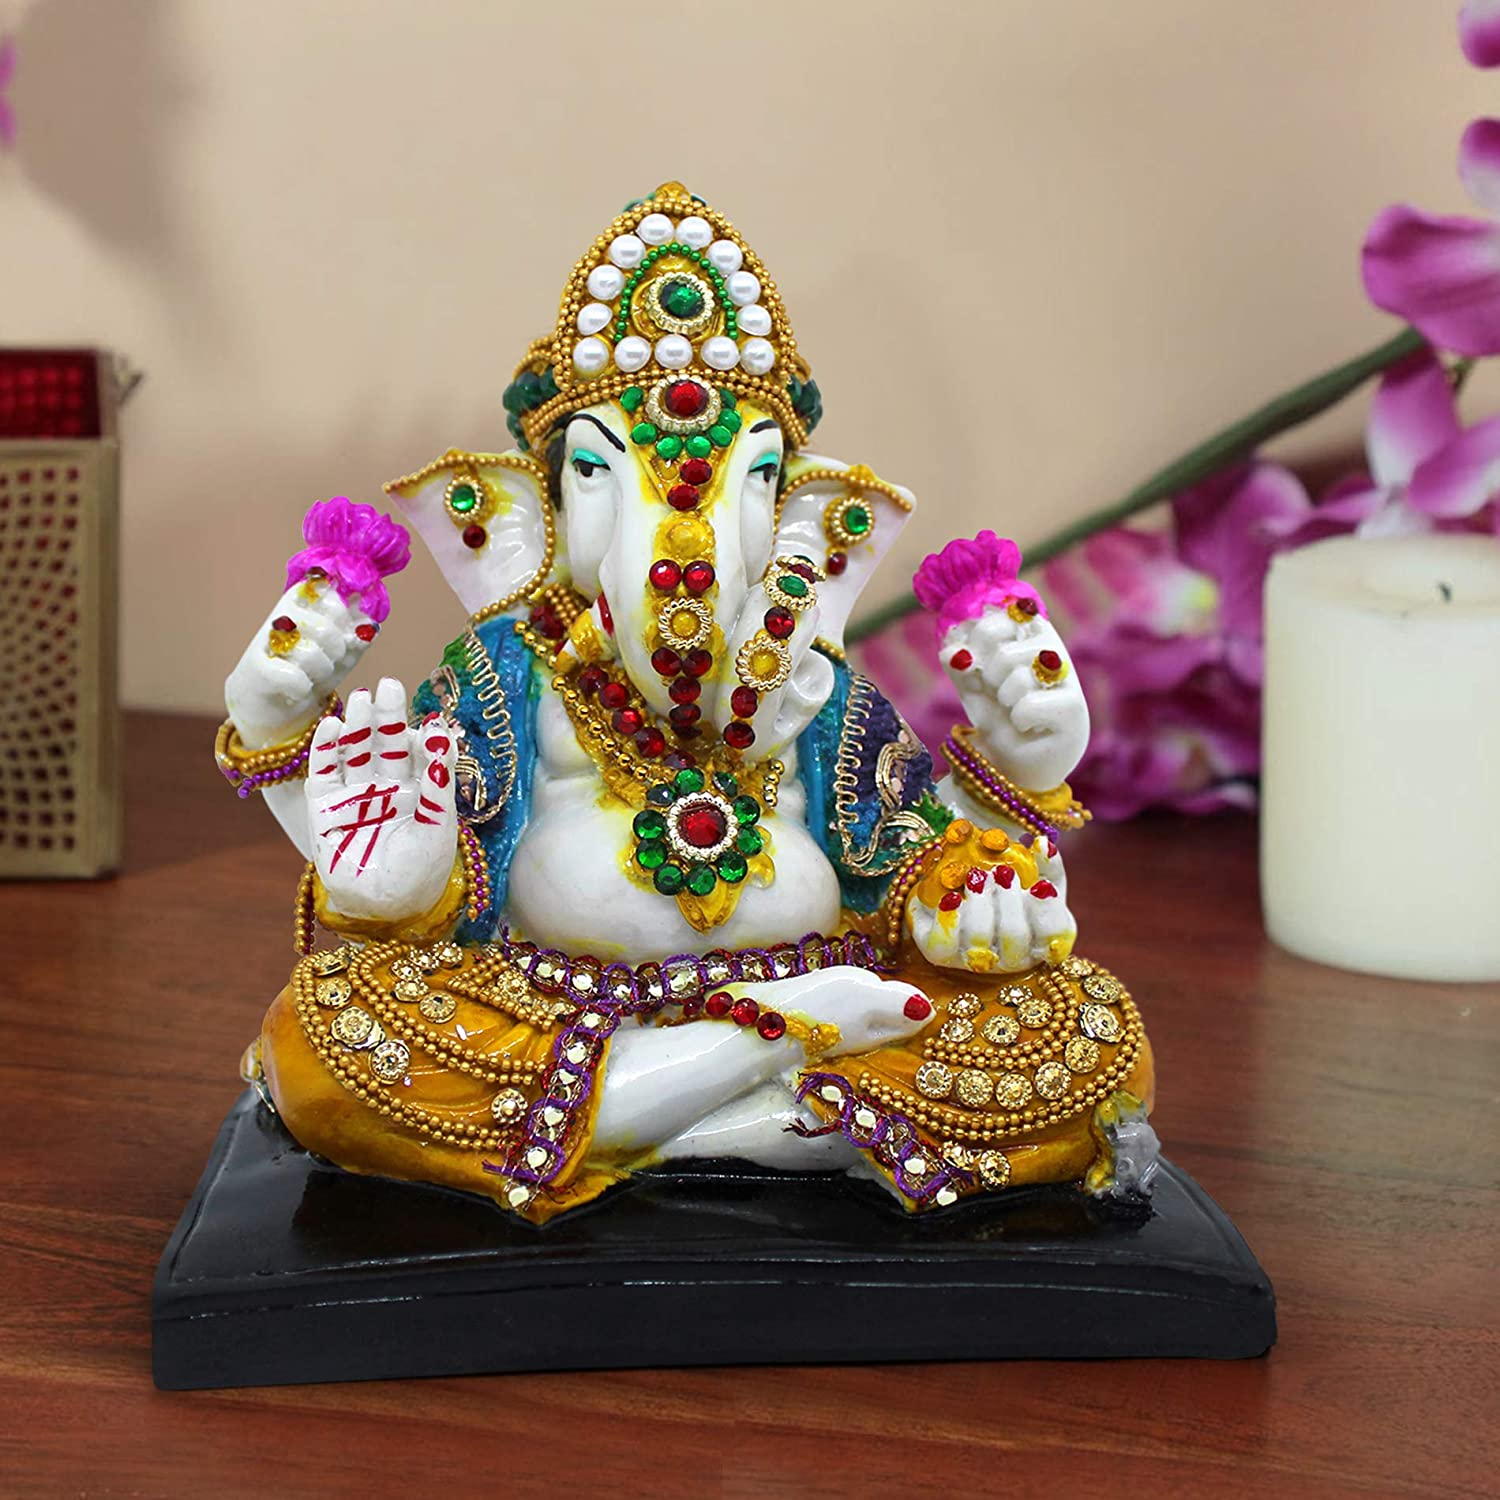 TiedRibbons Ganesha Statue (30 cm X 16 cm X 9 cm, Resin) - Indian God Ganesh Figurine for Home Mandir Desktop Office Diwali Decoration and Gifts